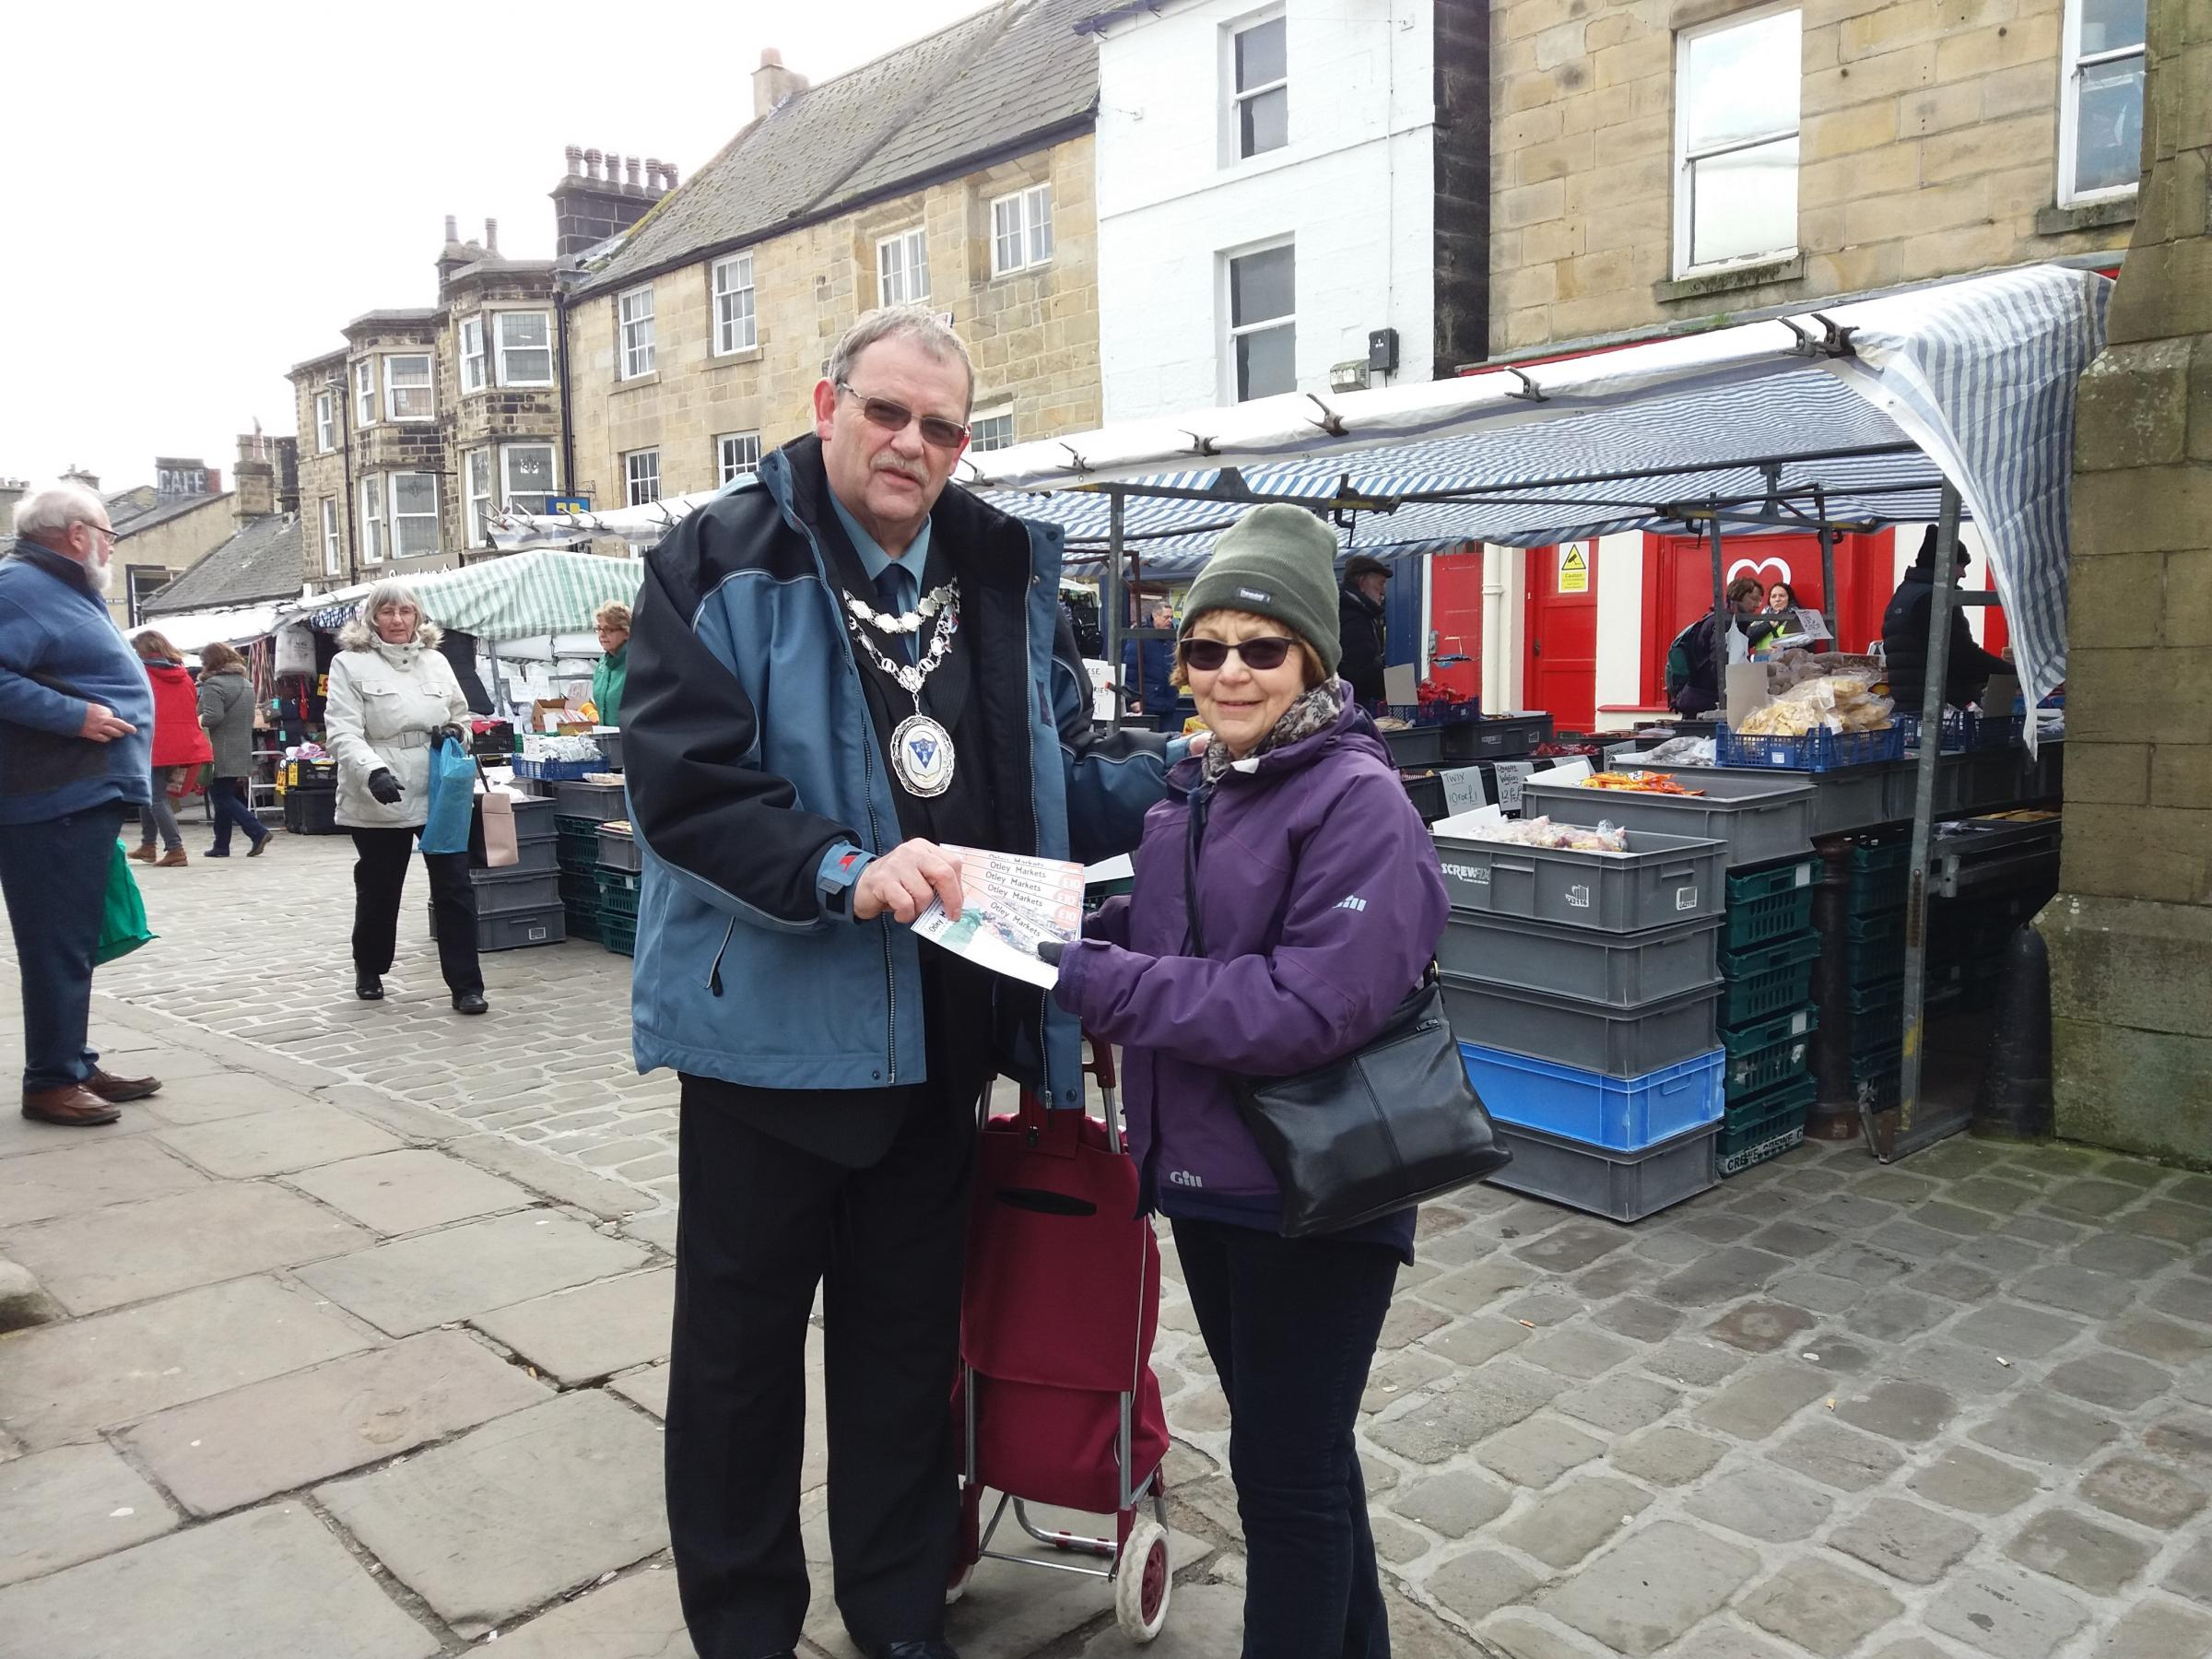 Otley Town Mayor Councillor Nigel Francis presenting competition winner Sheila Collins with her market vouchers